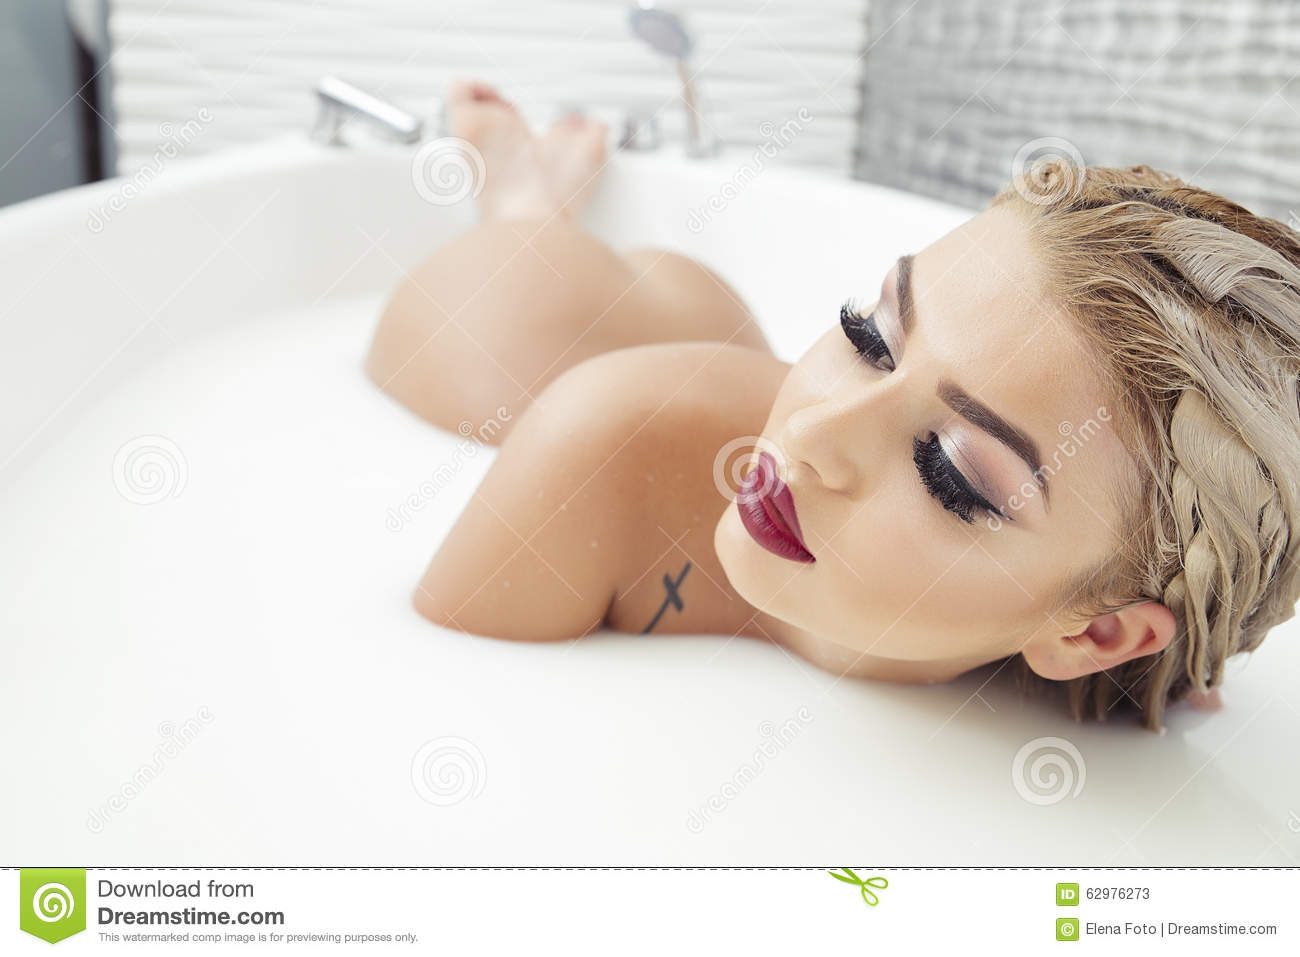 Sex In Der Badewanne Videos 48